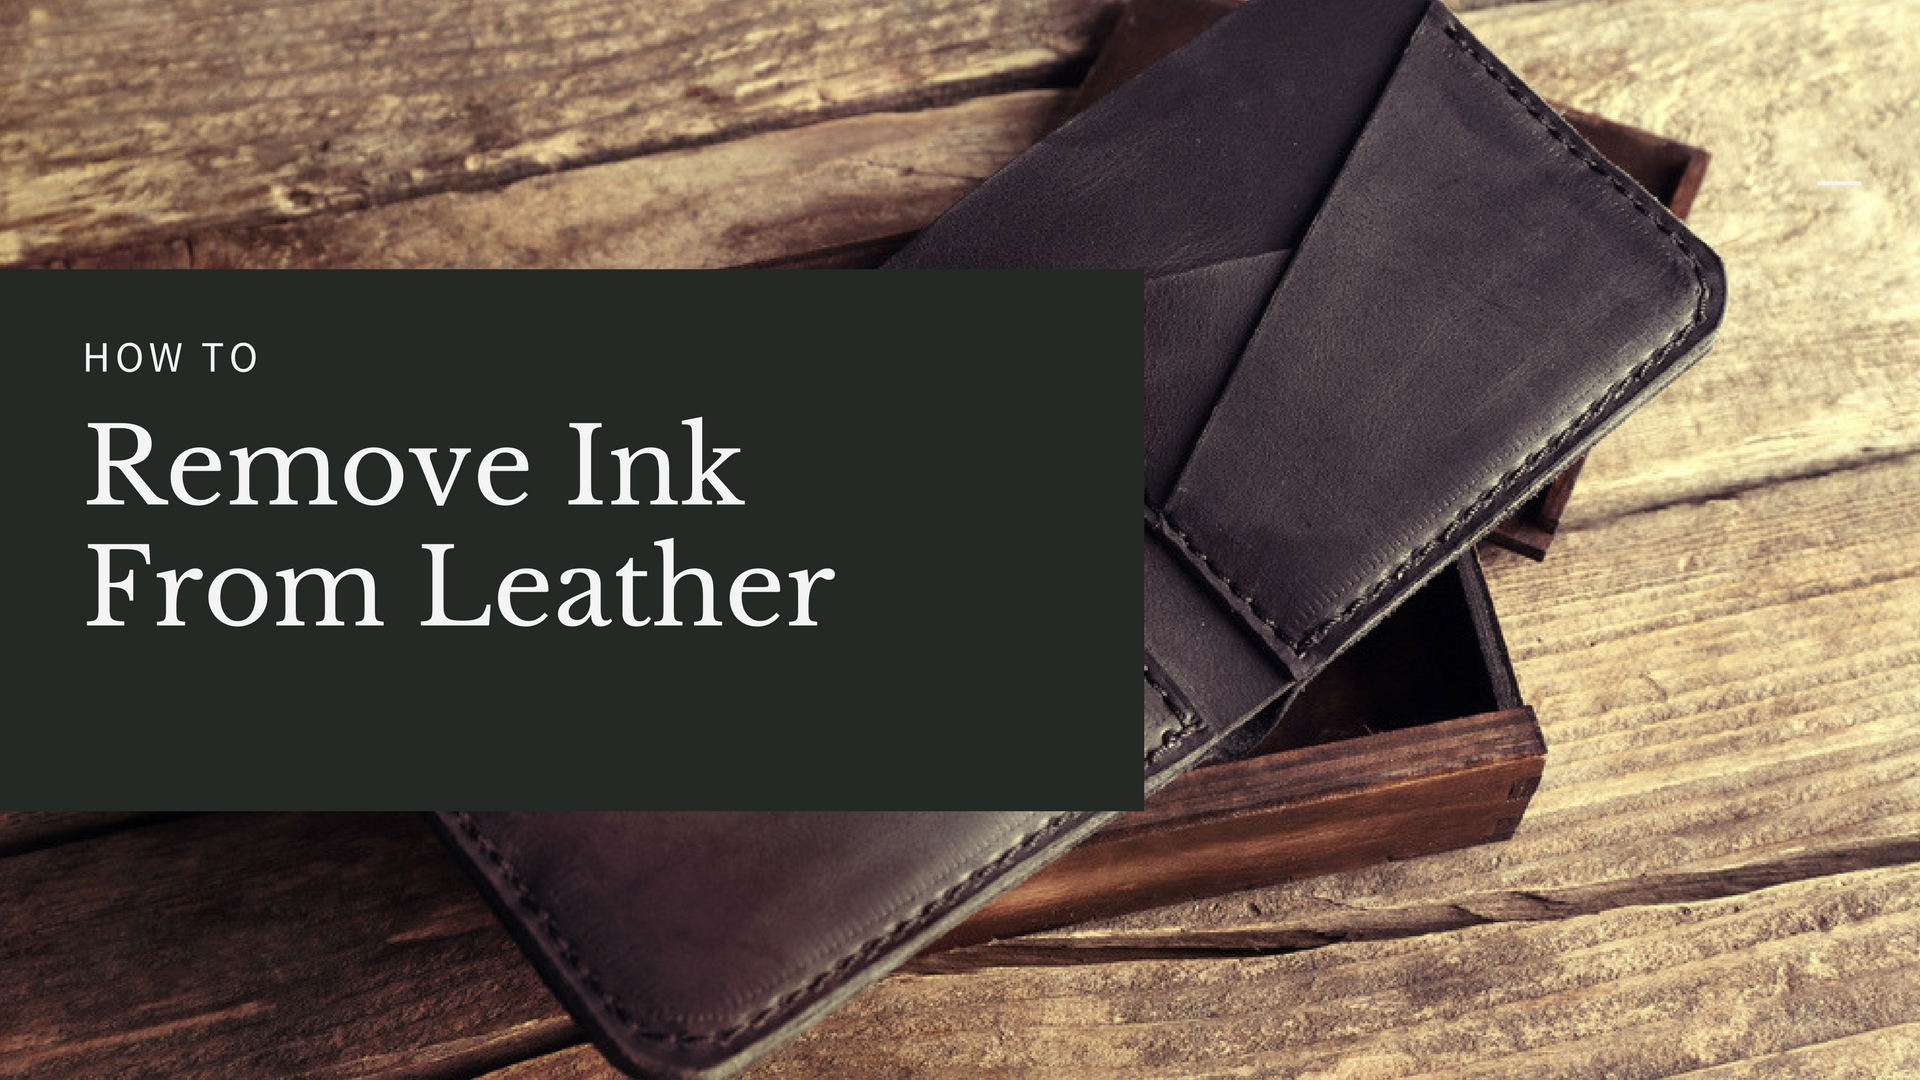 How To Remove Ink From Leather >> How To Remove Ink From Leather Marlborough Of England